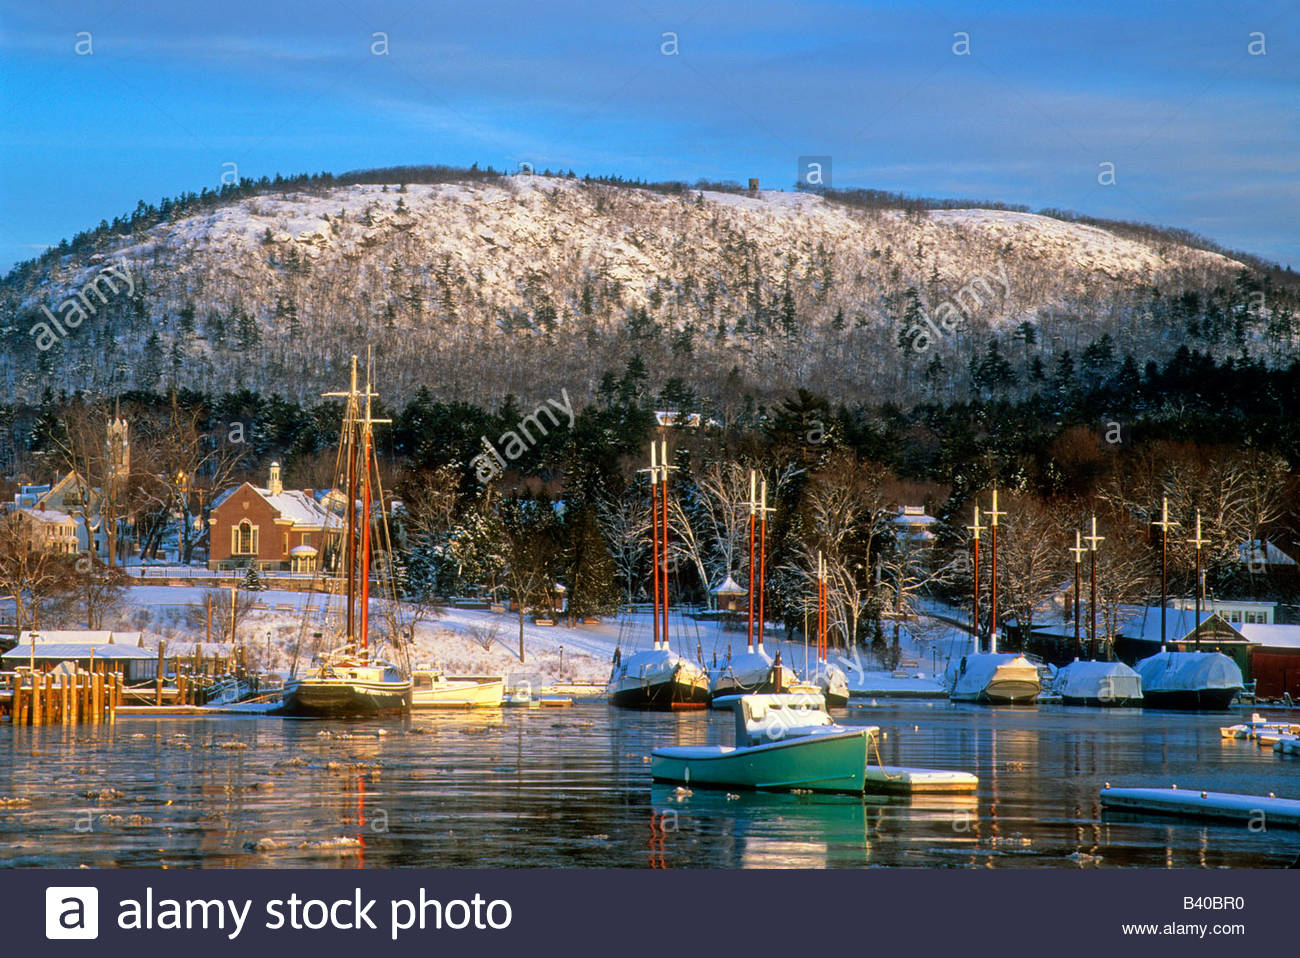 winter harbor online dating Winter harbor, me criminal records criminal records and background checks may be available for individuals living in winter harbor or the surrounding communities of winter harbor in the state of maine.